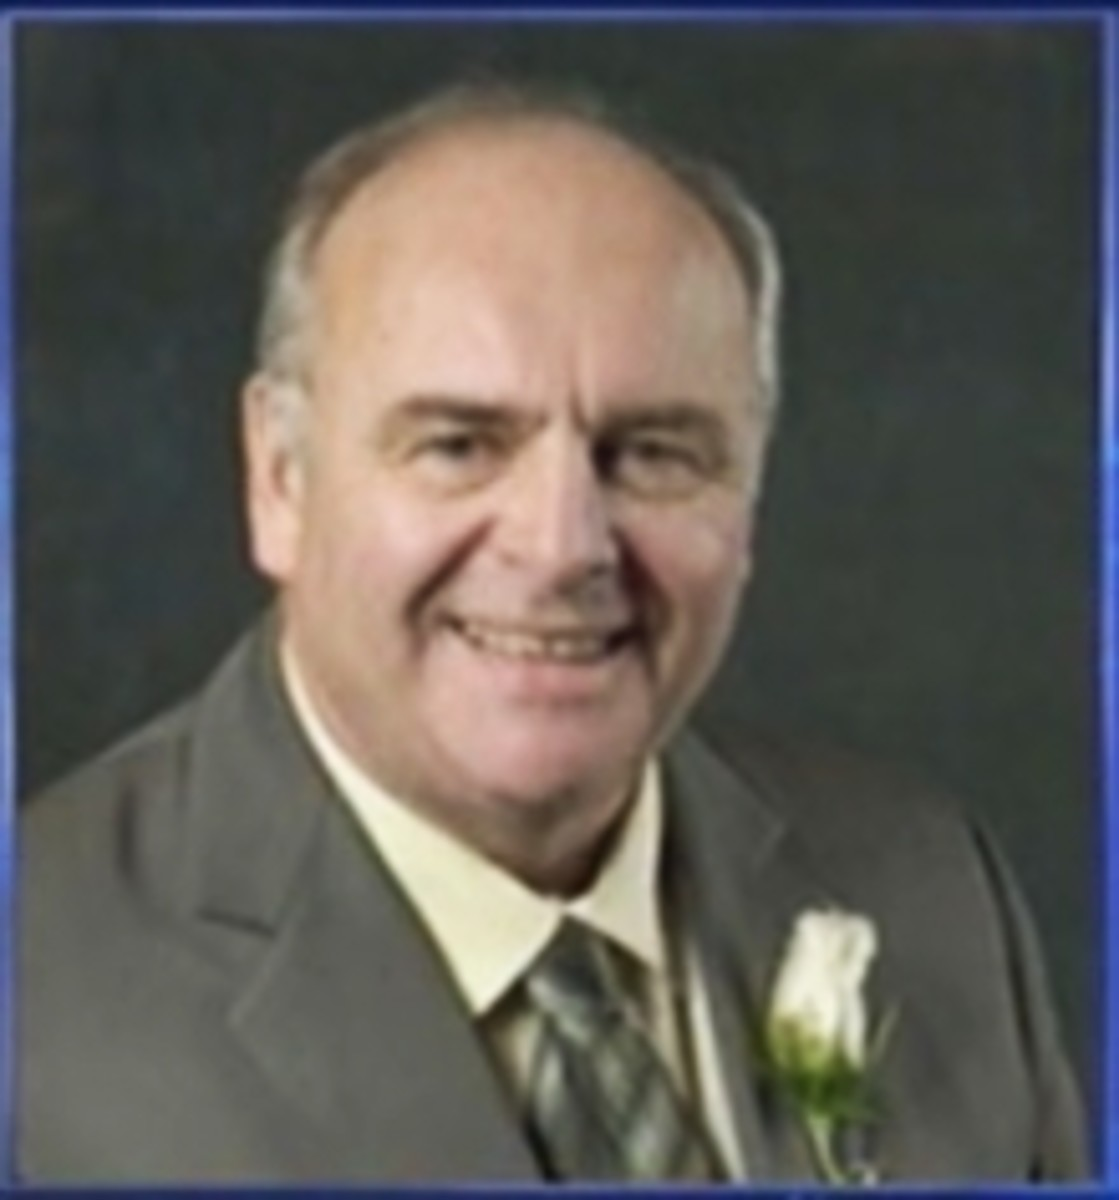 Bill Clement, 61, died of cancer on May 3, 2010 - cancer deaths